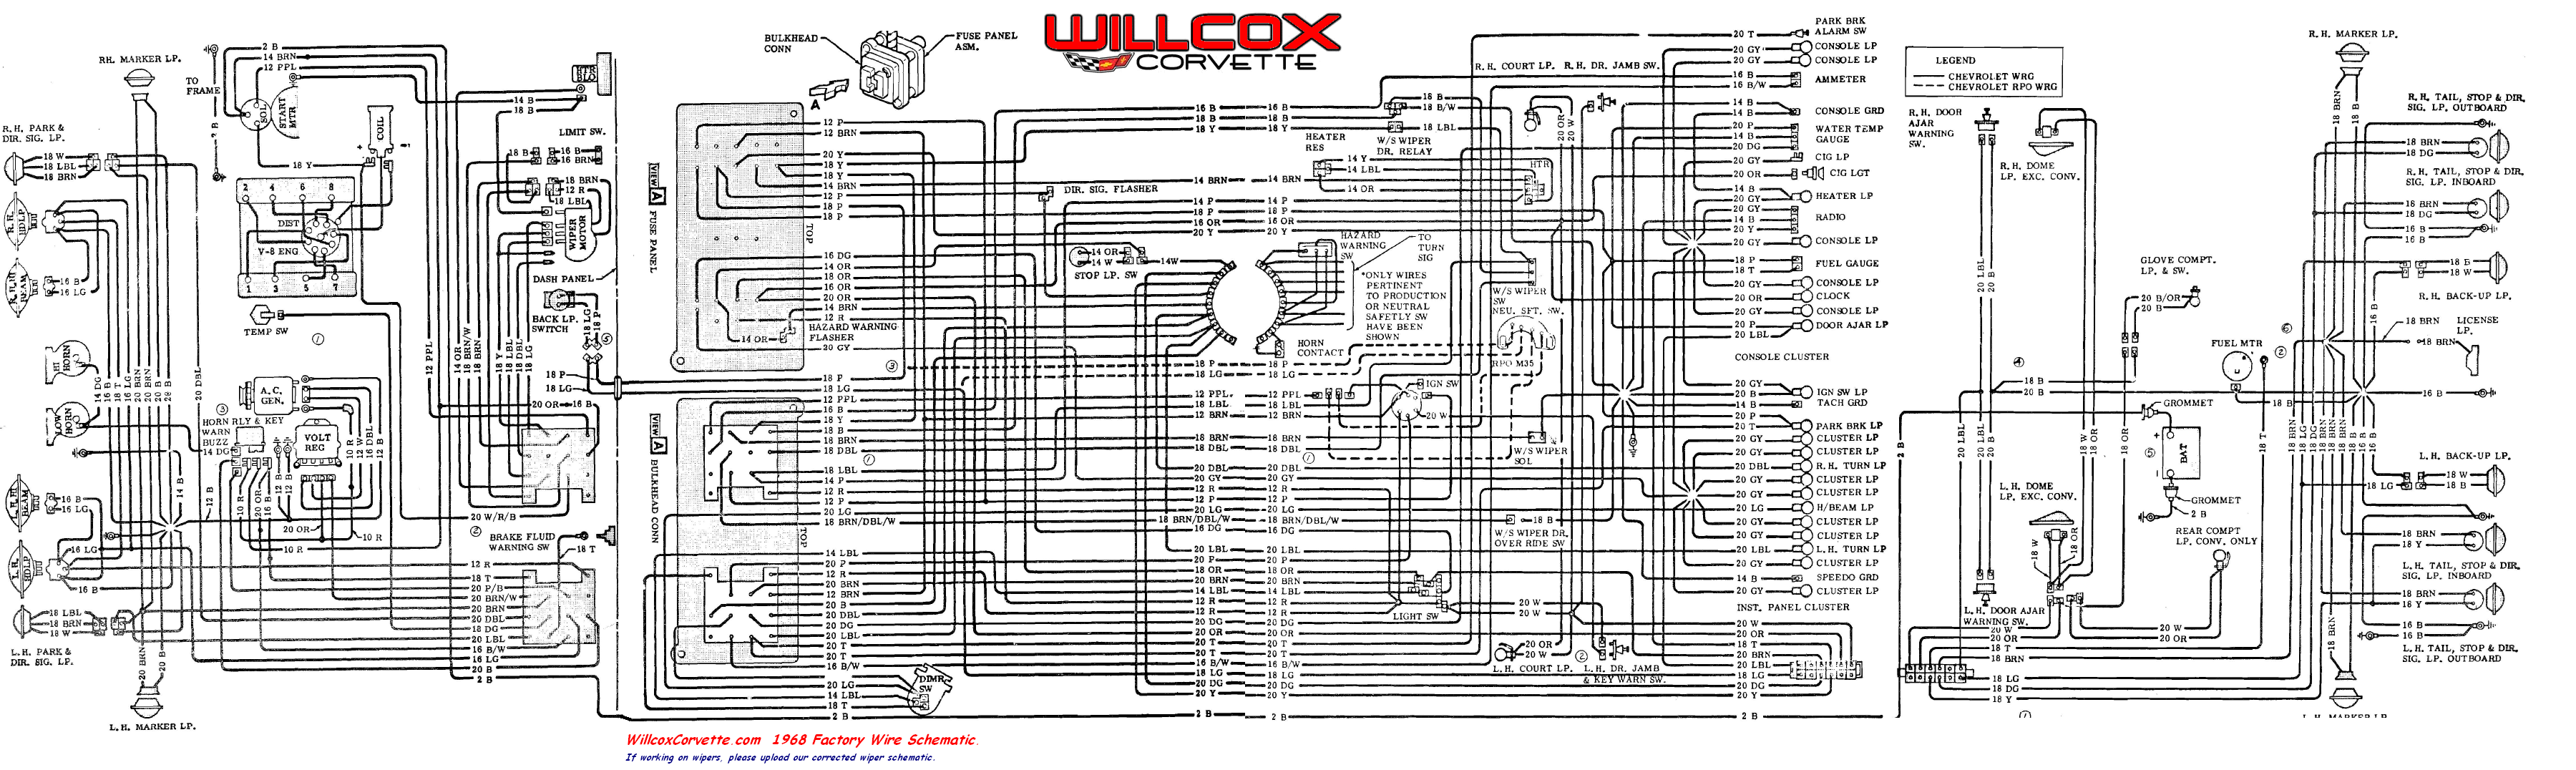 brake switch wiring diagram for 1980 chevy malibu ignition switch wiring diagram for 1931 chevy 1975 corvette wiring diagram 1975 free engine image for